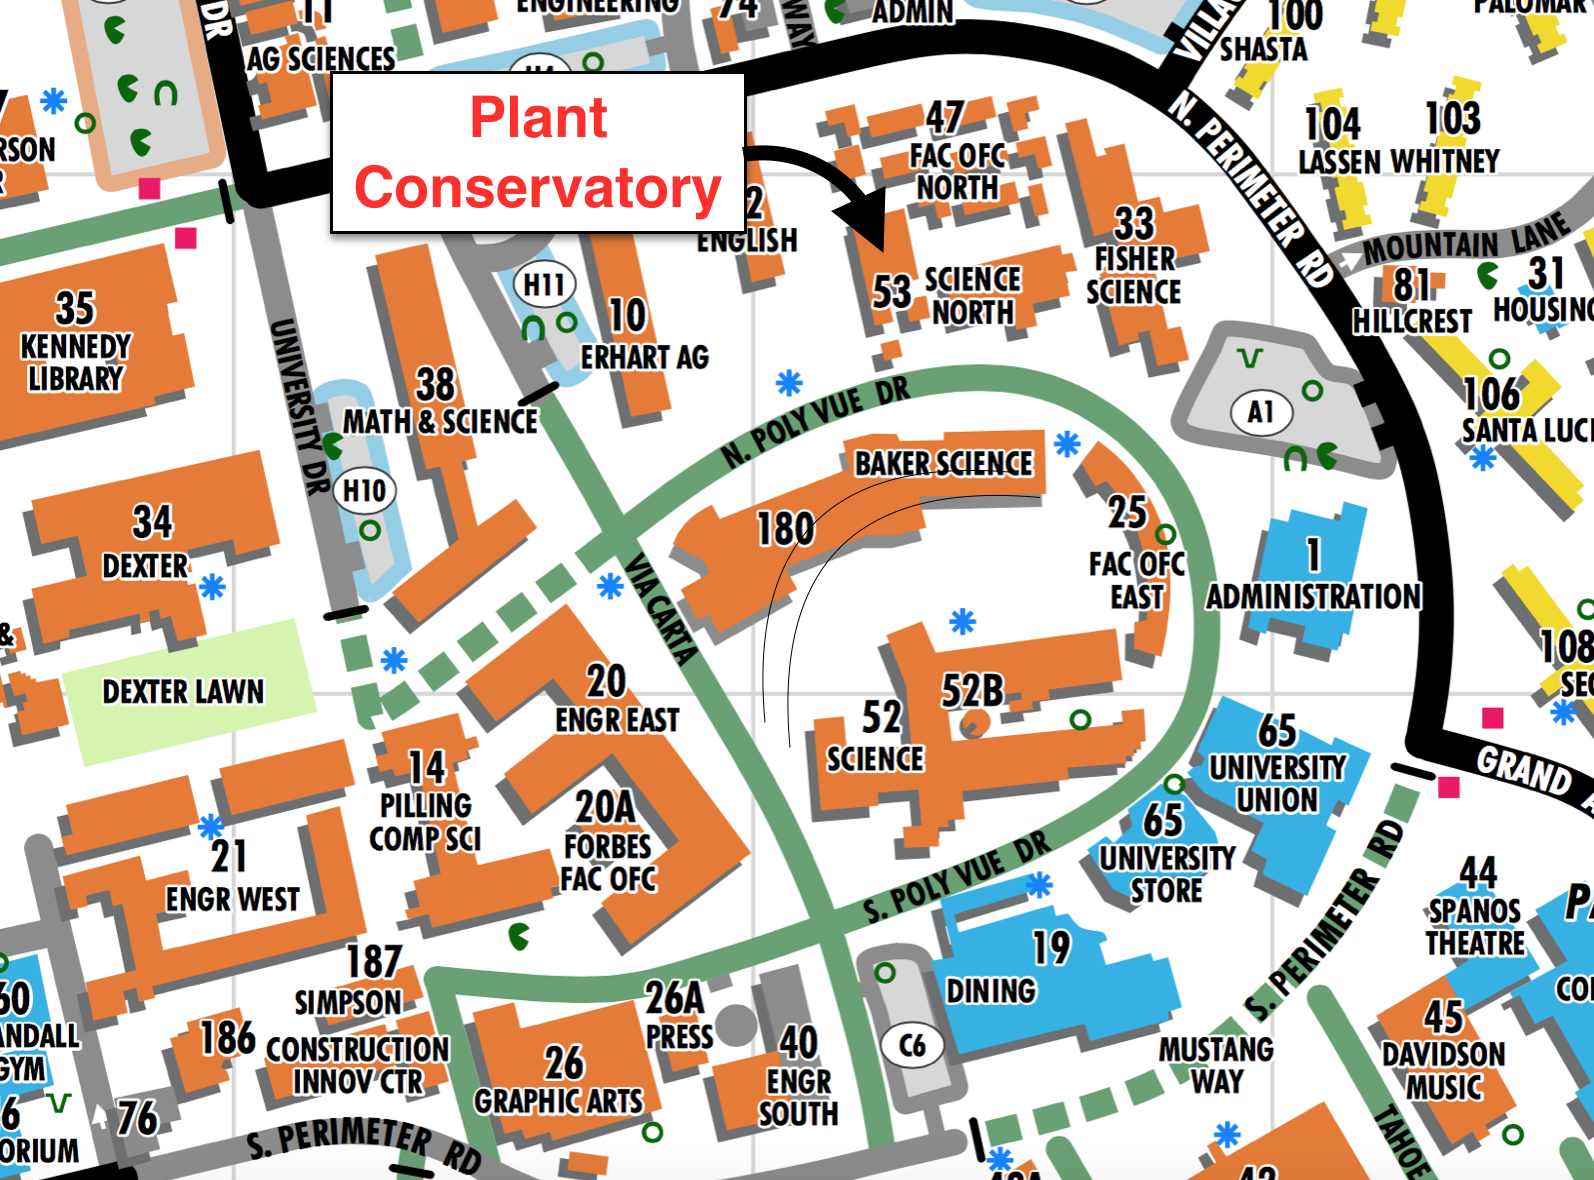 Cal Poly Campus Map on